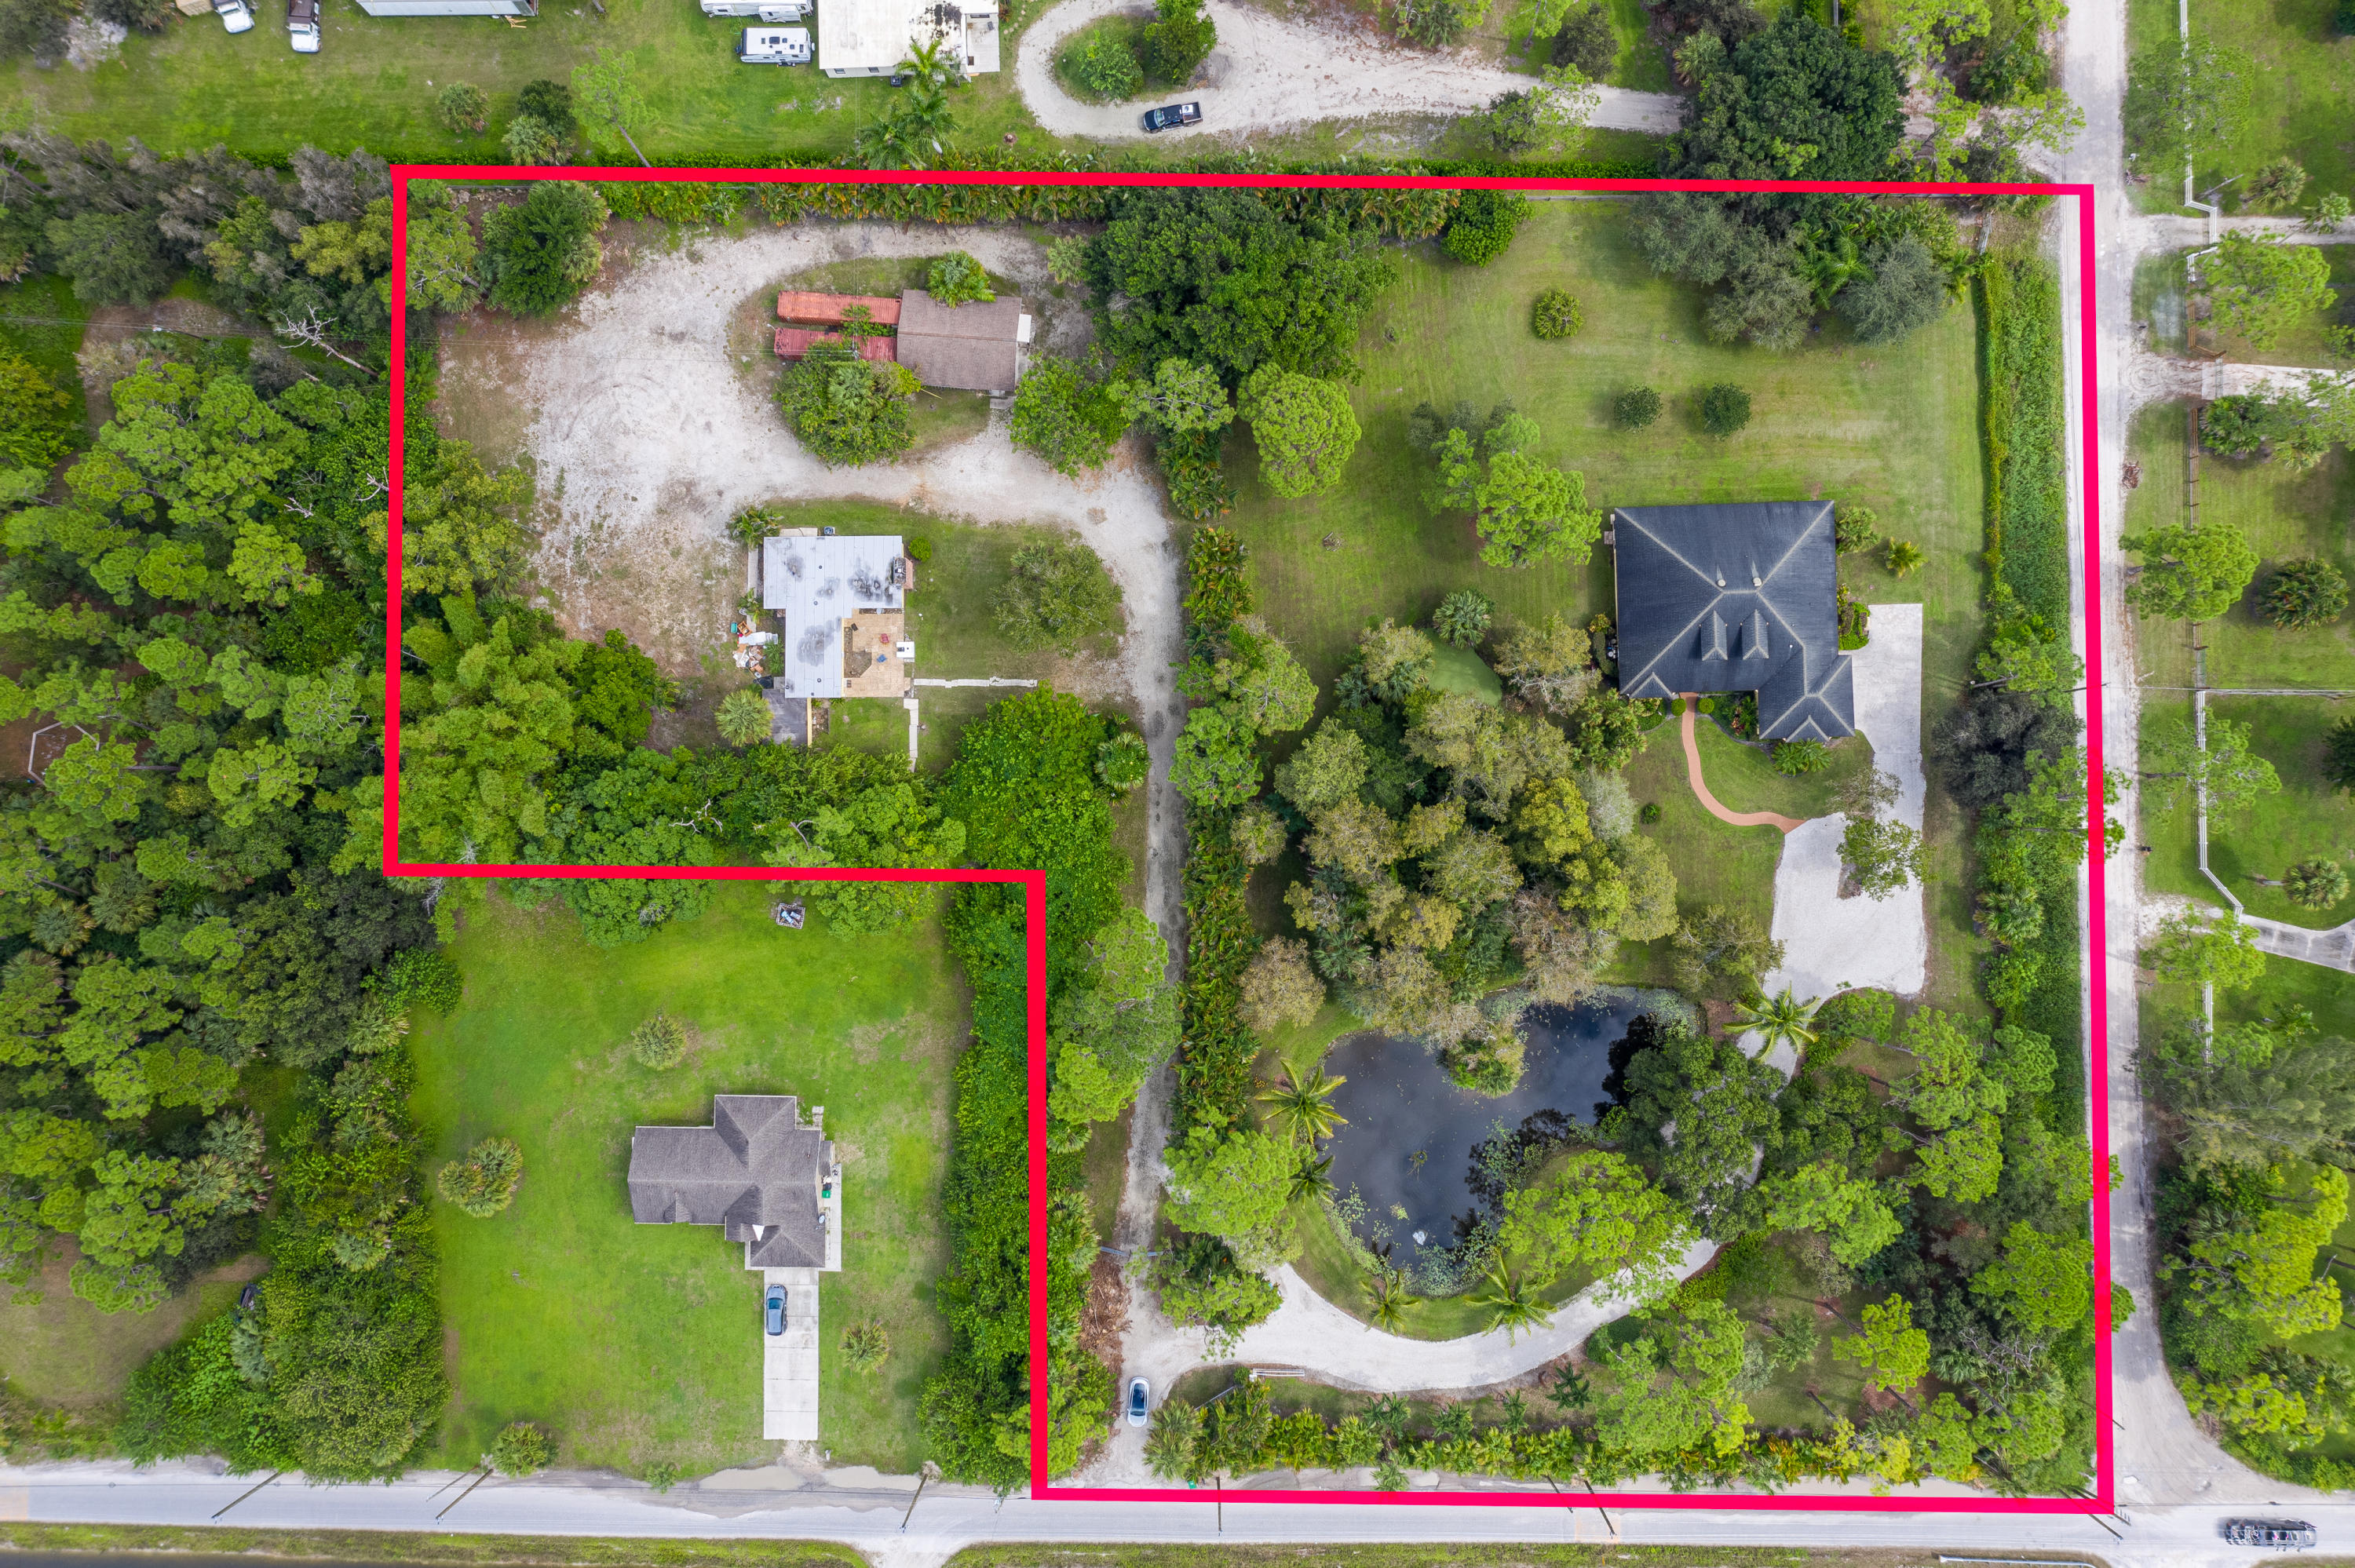 2376 C Road, Loxahatchee in Palm Beach County, FL 33470 Home for Sale